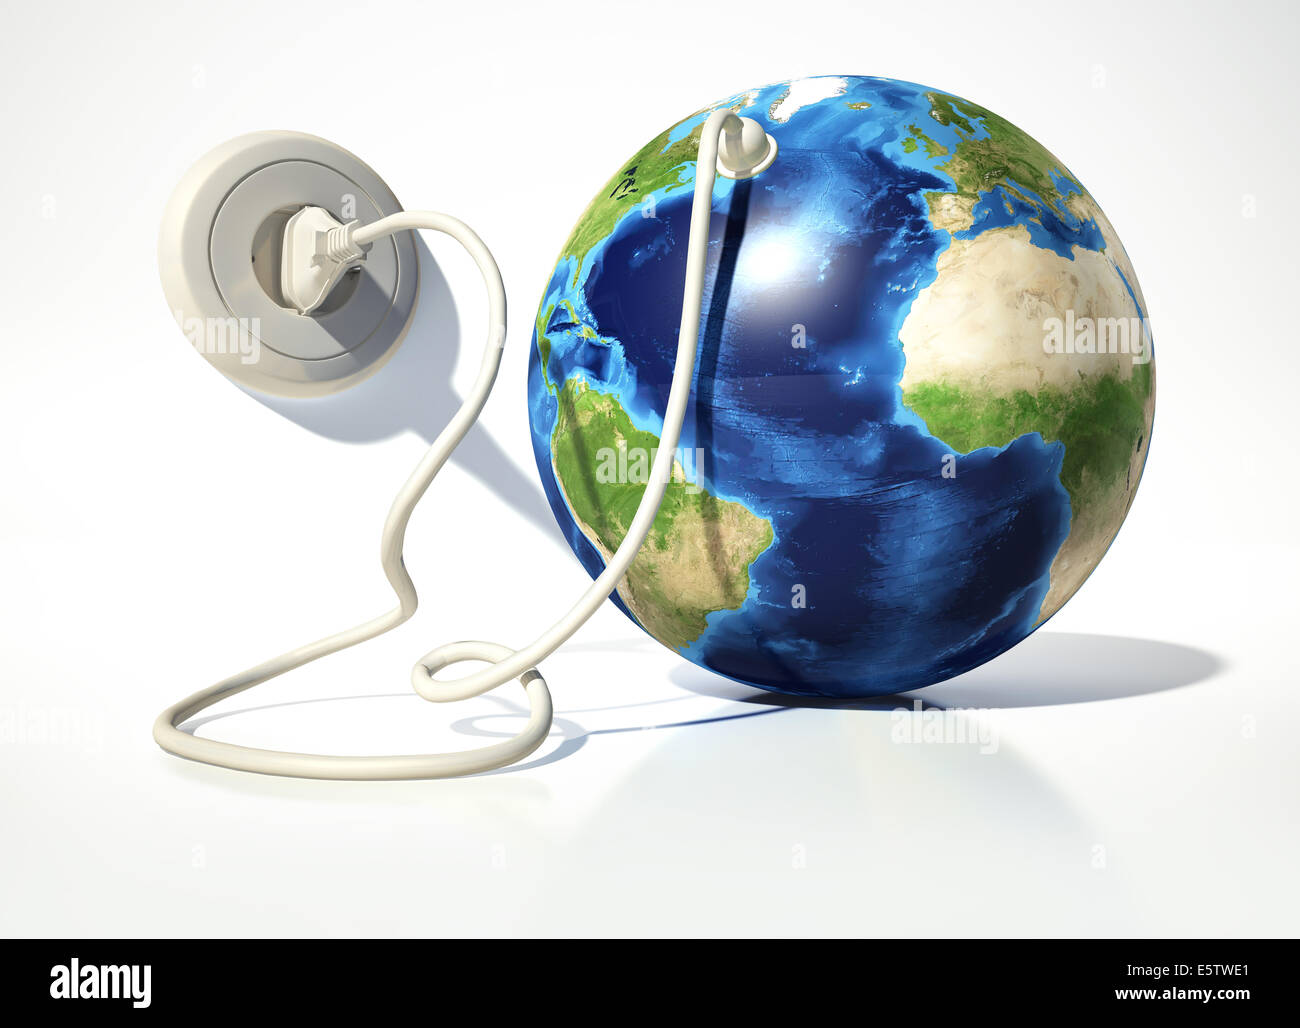 Planet Earth with electric cable, plug and socket. On white surface and white background. - Stock Image